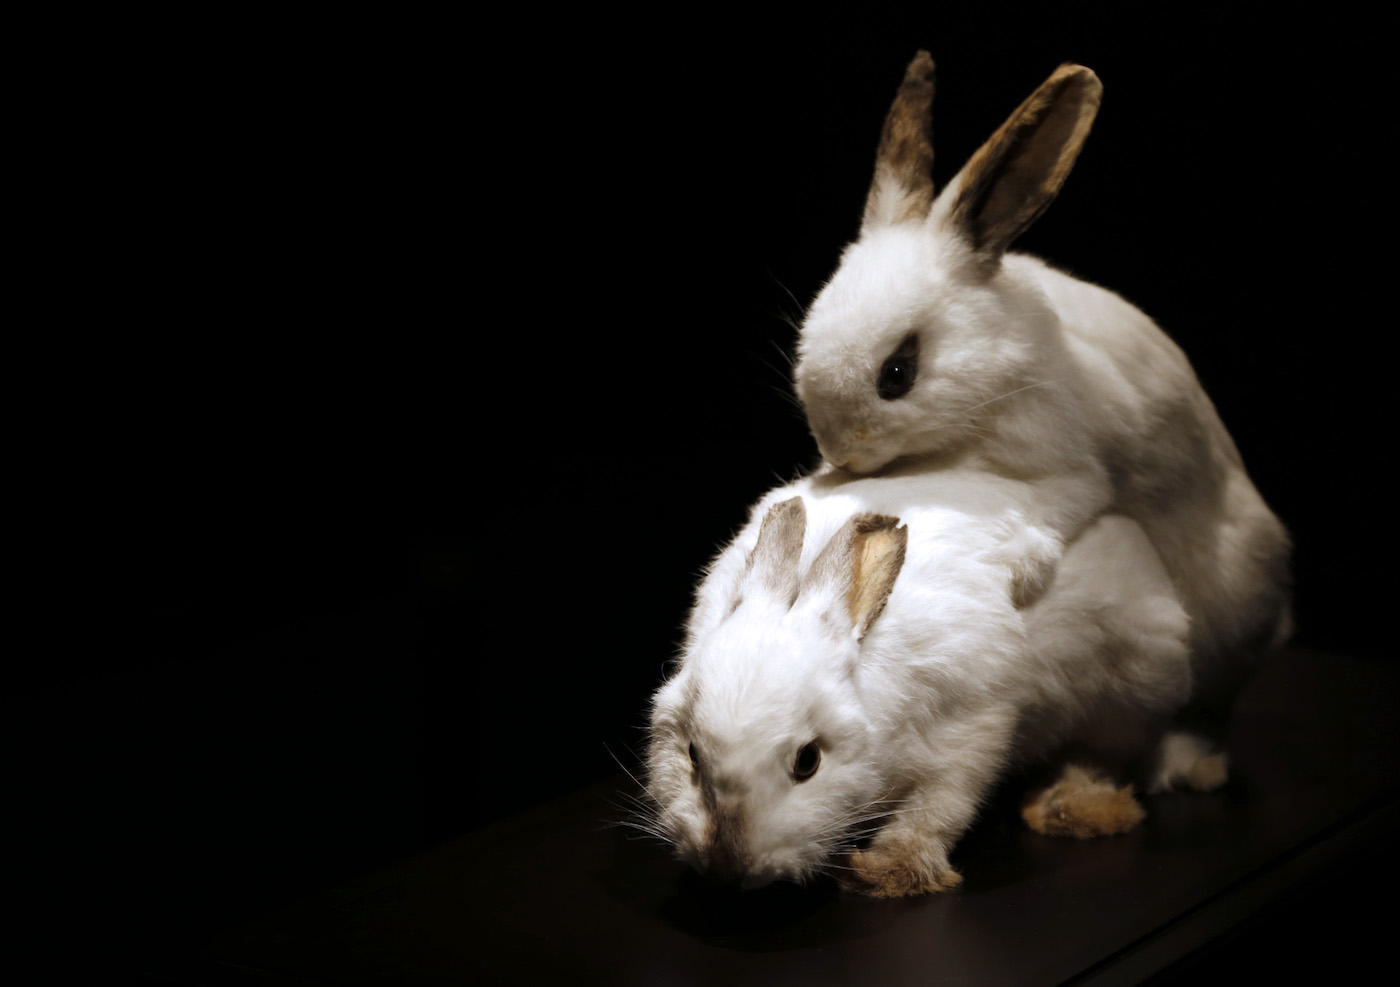 """TO GO WITH AFP STORY BY VERONIQUE MARTINACHE Stuffed rabbits copulating are on display at the Palais de la Decouverte (scientific museum) in Paris on October 23, 2012 as part of the exhibition """"Betes de sexe"""" (Sexual beasts) dedicated to the sexual life of animals. The event runs from October 23 to August 25, 2013. AFP PHOTO FRANCOIS GUILLOT (Photo credit should read FRANCOIS GUILLOT/AFP/Getty Images)"""